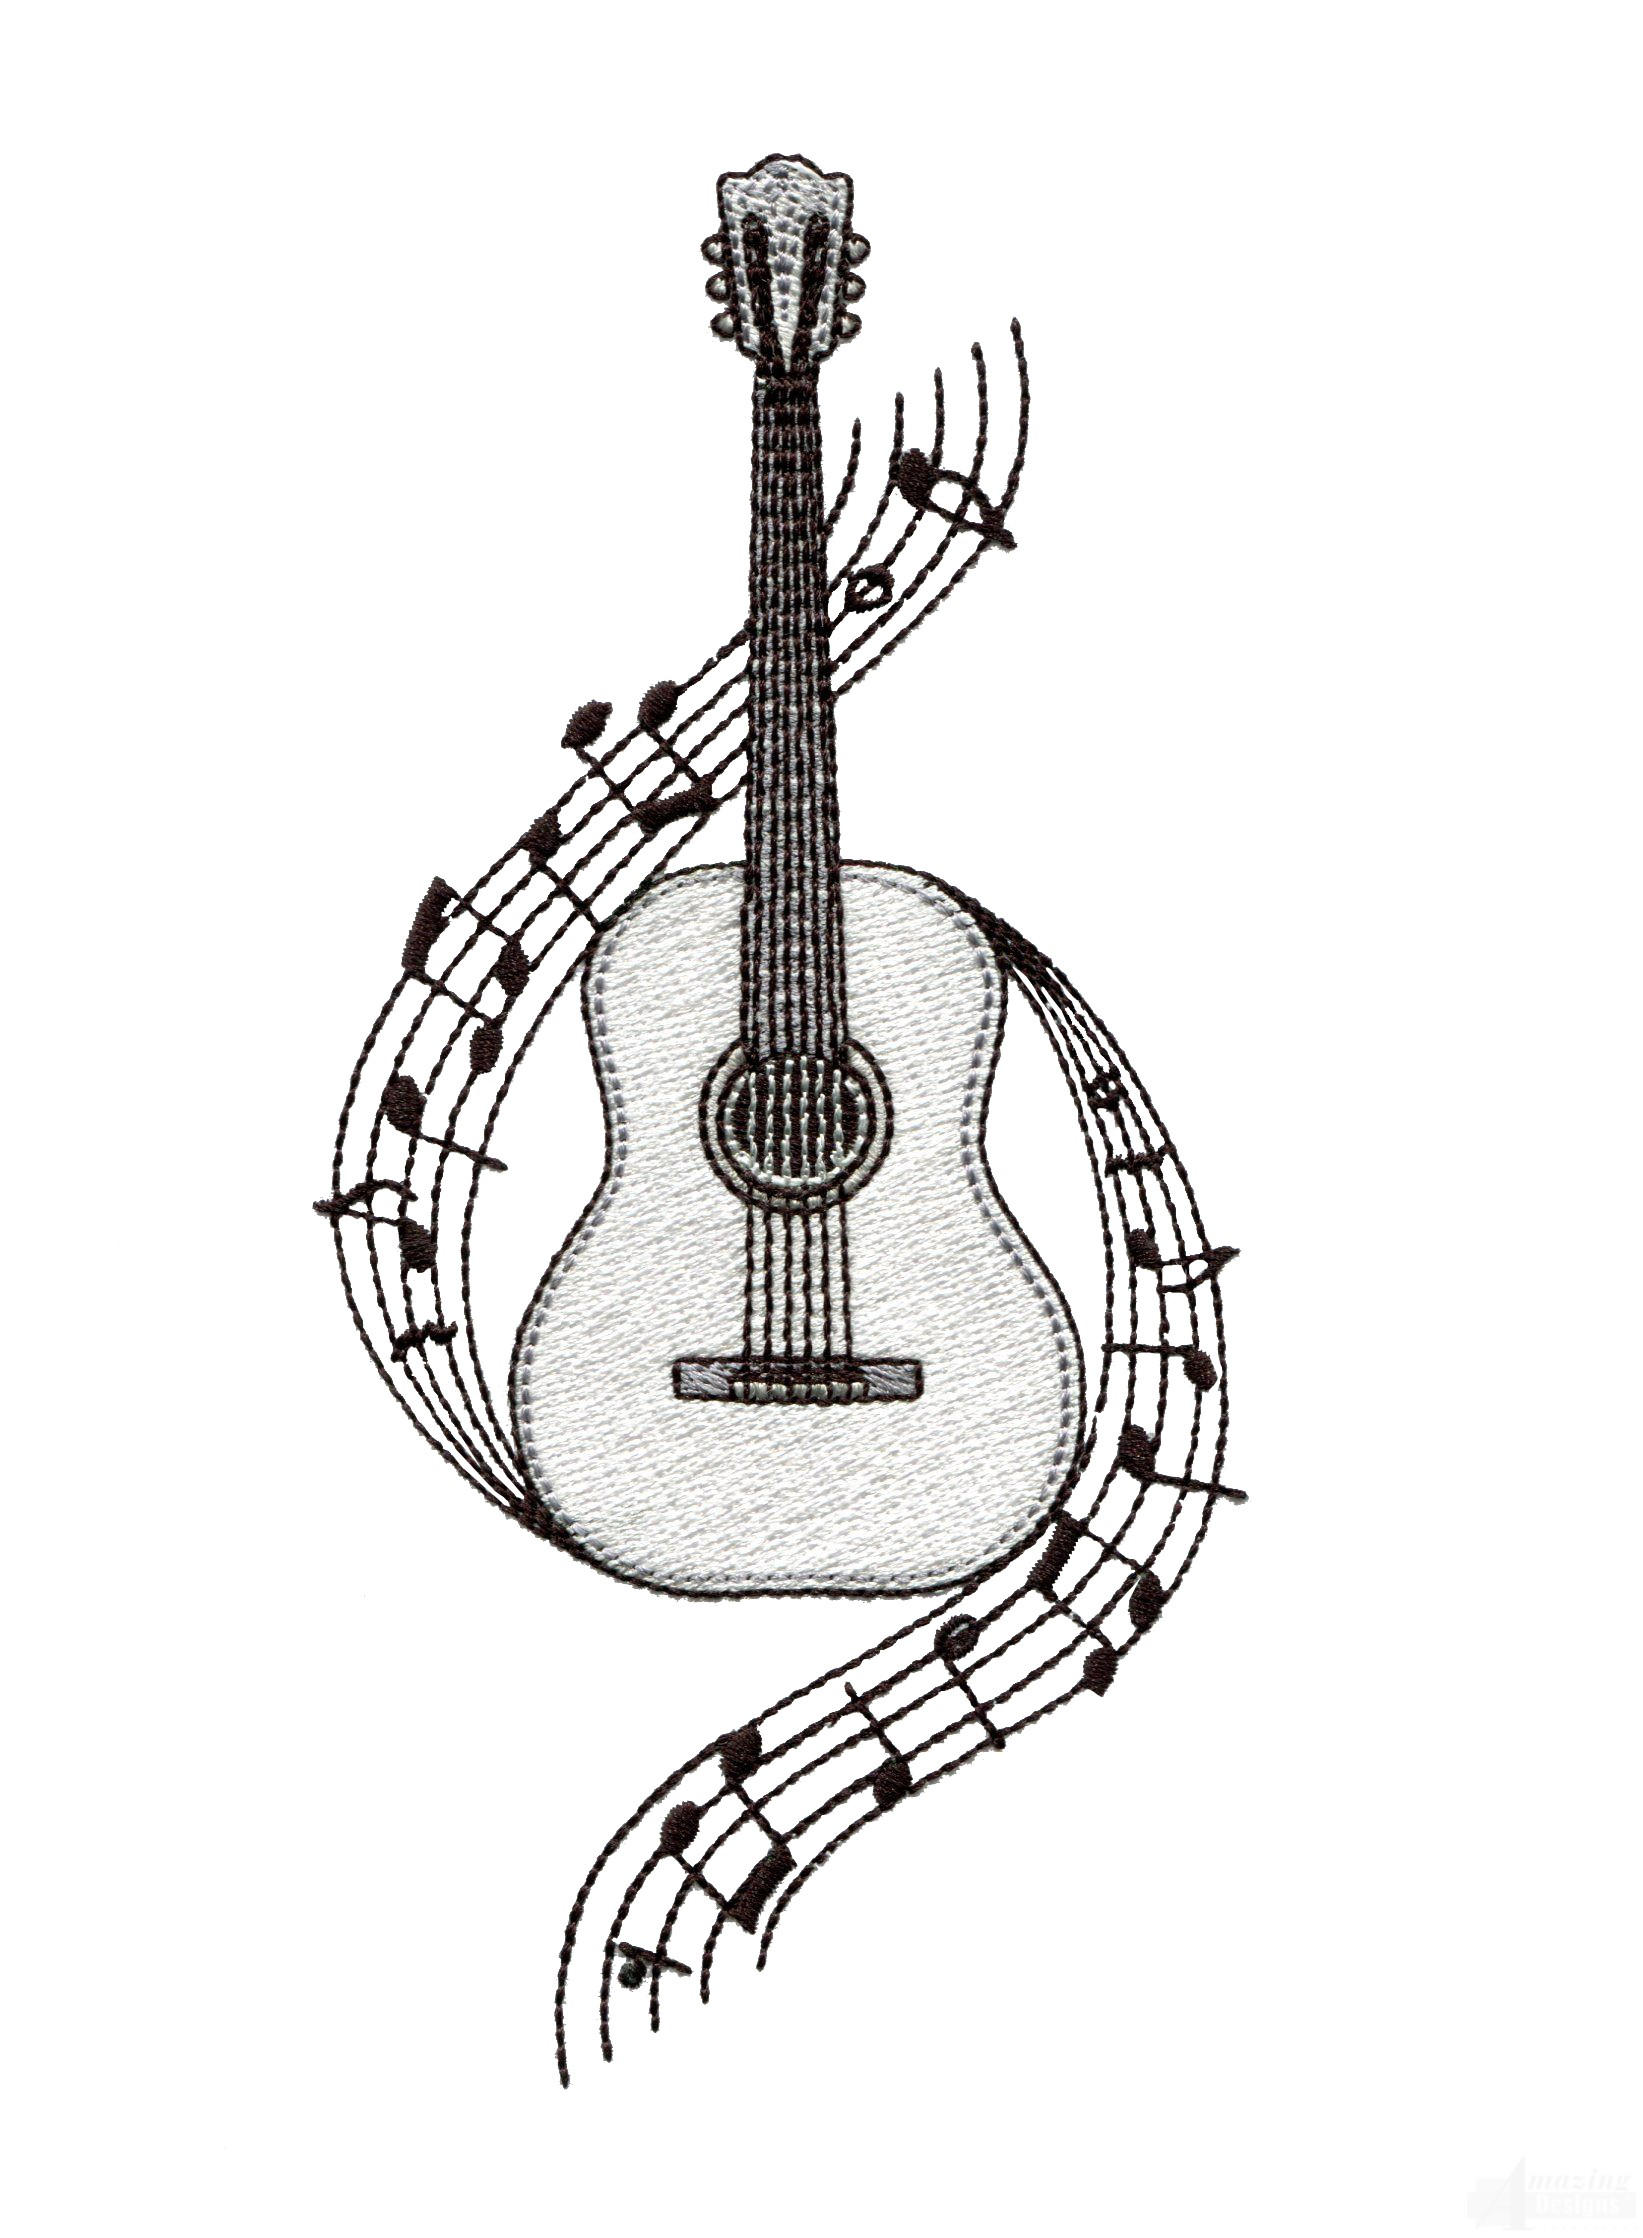 Drawn music notes guitar Embroidery Guitar Guitar  designs